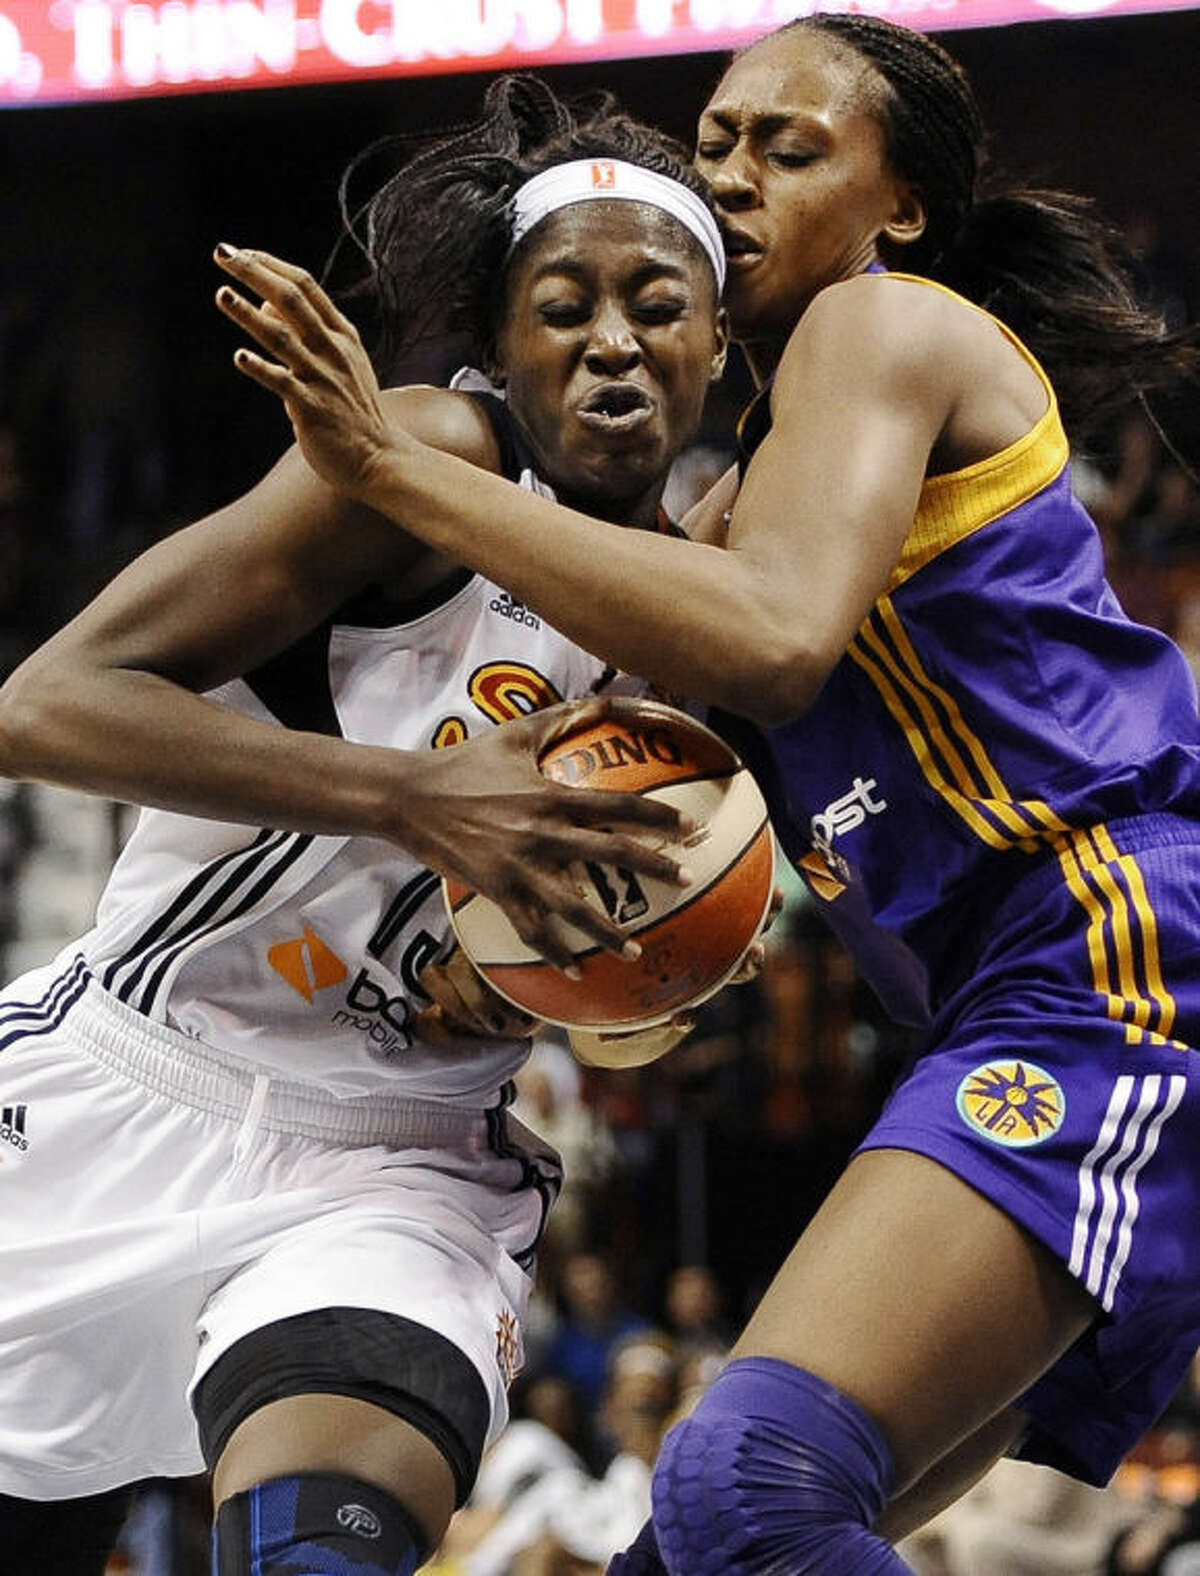 Connecticut Sun?'s Chiney Ogwumike, left, is guarded by Los Angeles Sparks?' Sandrine Gruda, right, during the second half of a WNBA basketball game, Sunday, July 13, 2014, in Uncasville, Conn. The Sparks won 90-64. (AP Photo/Jessica Hill)